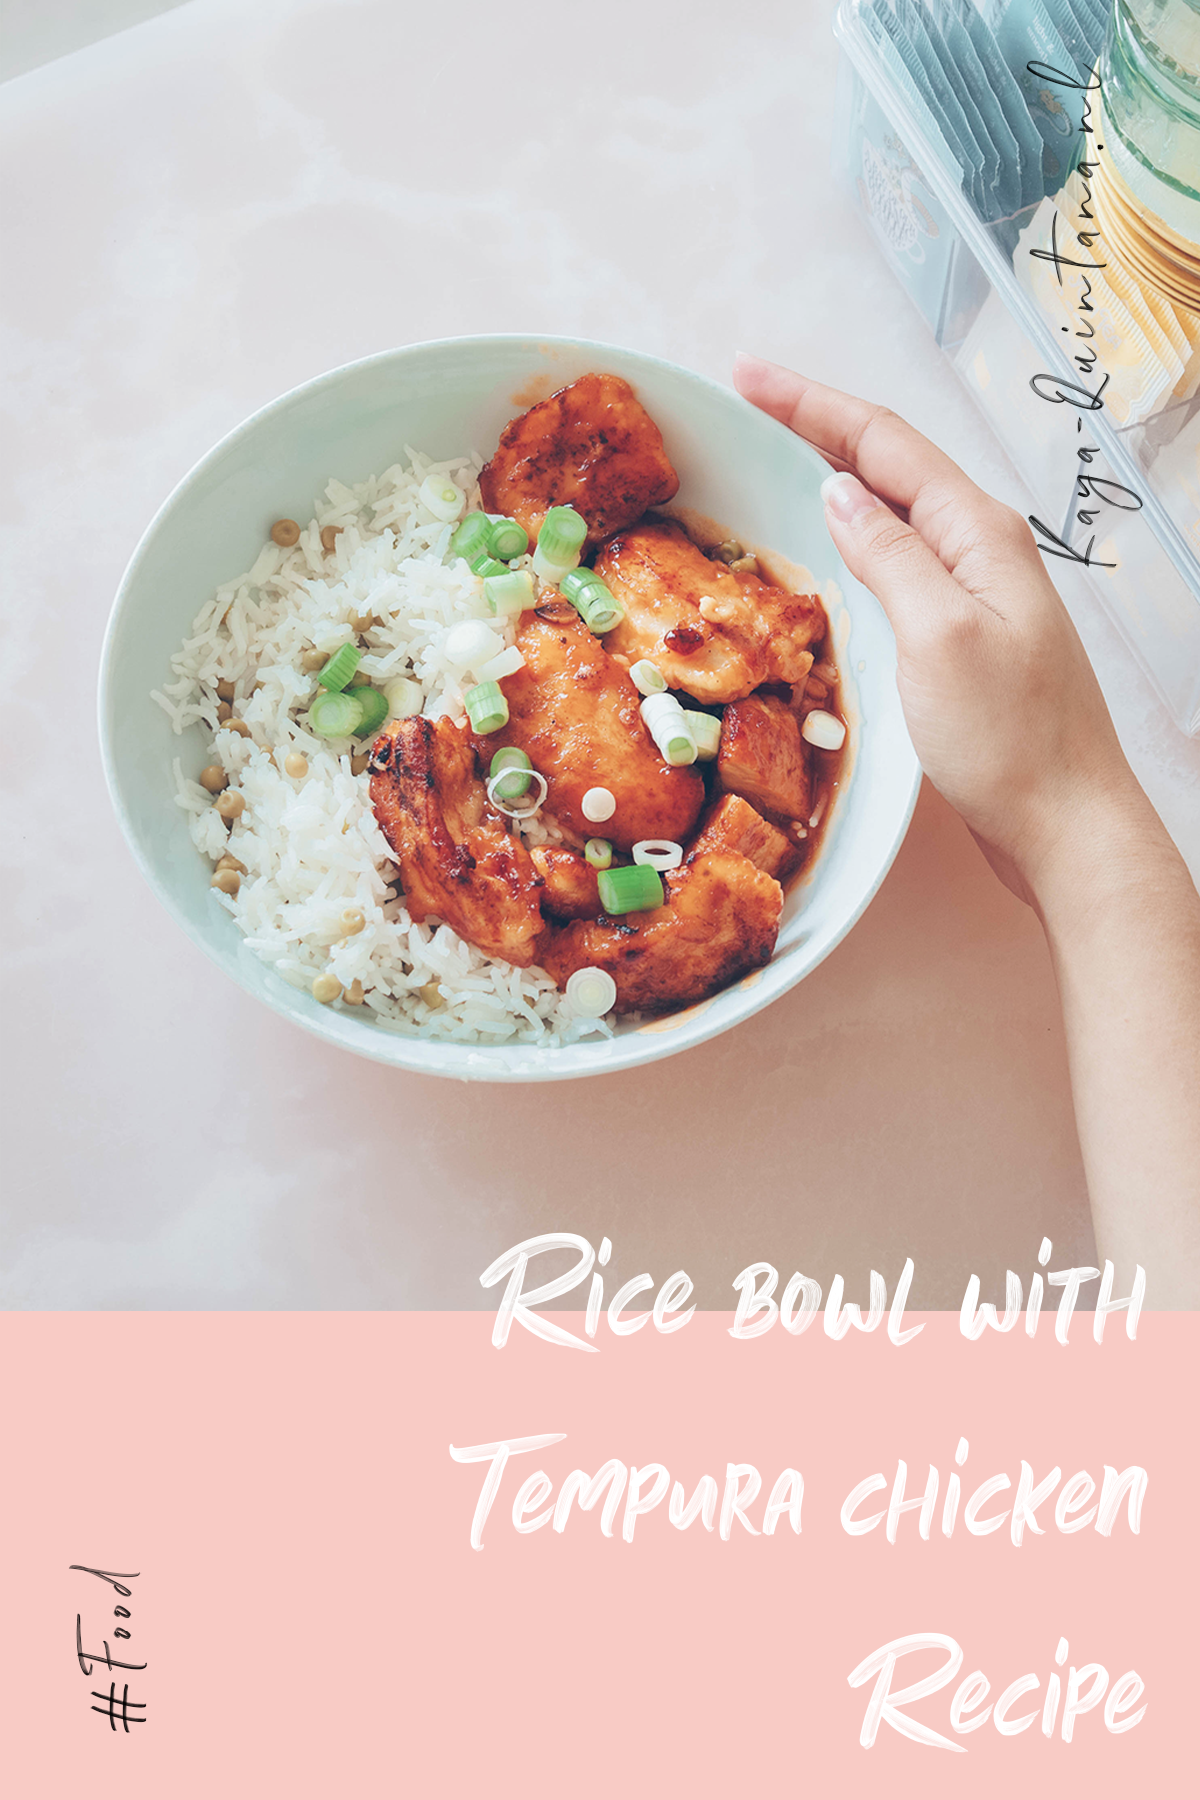 Rice bowl with chicken tempura recipe